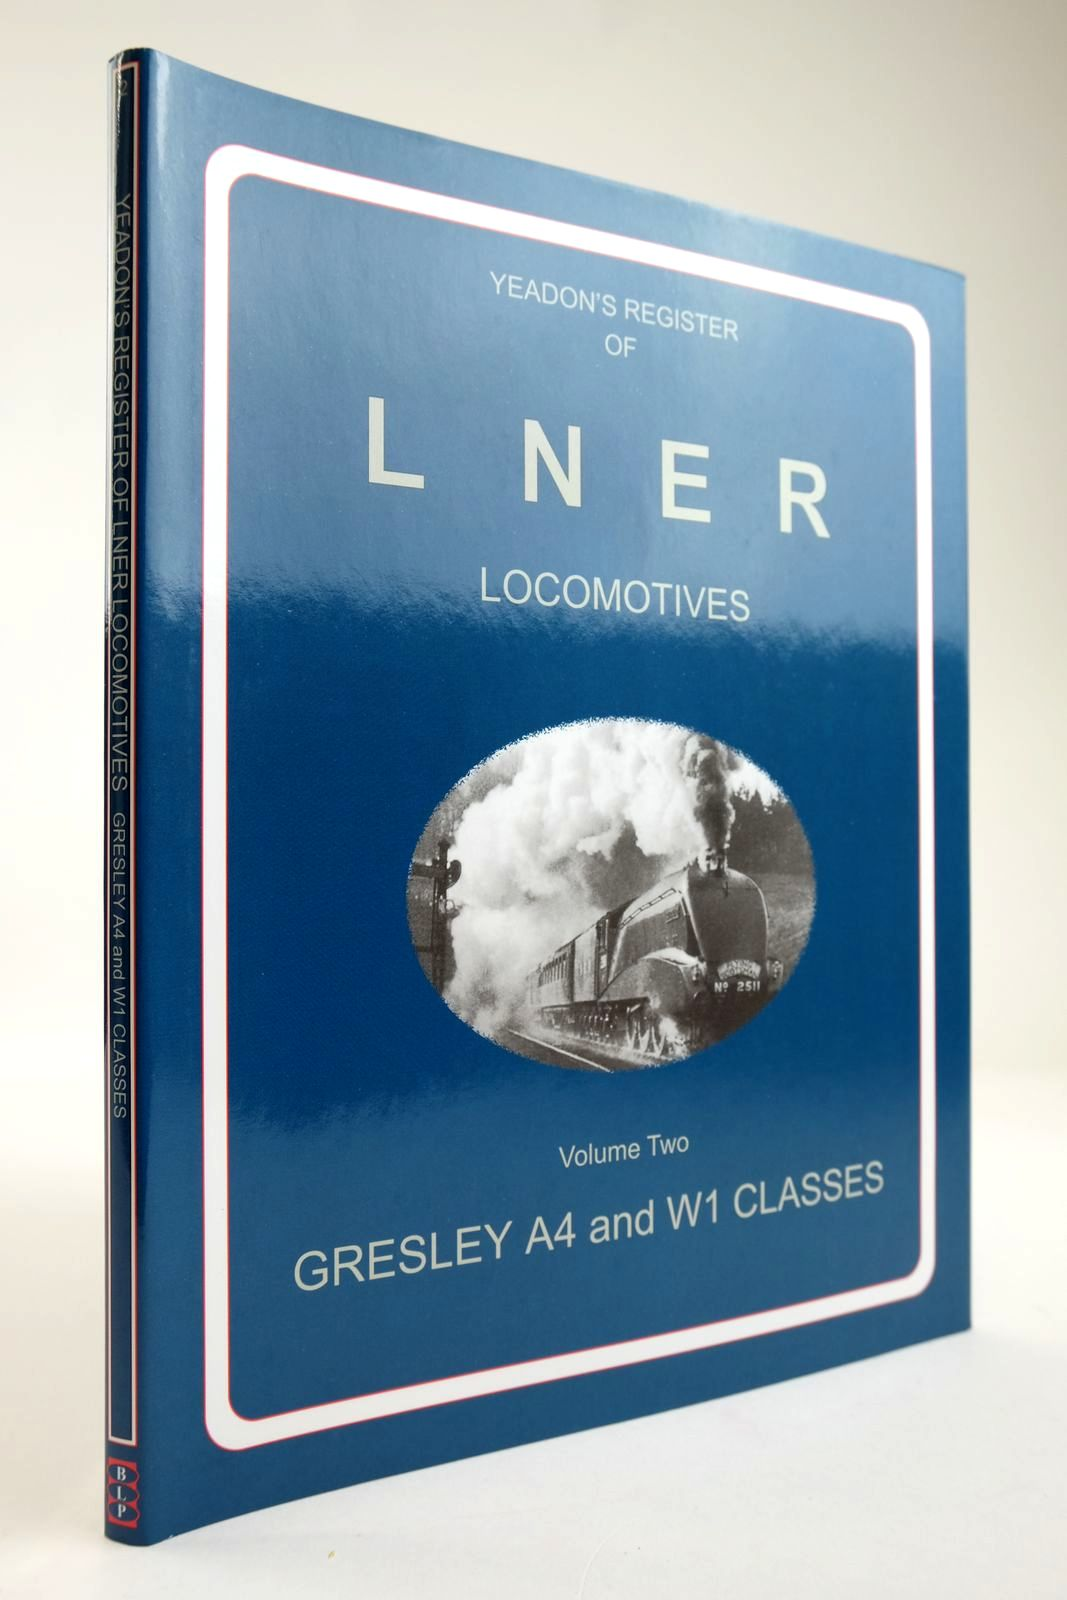 Photo of YEADON'S REGISTER OF LNER LOCOMOTIVES VOLUME TWO- Stock Number: 2133581